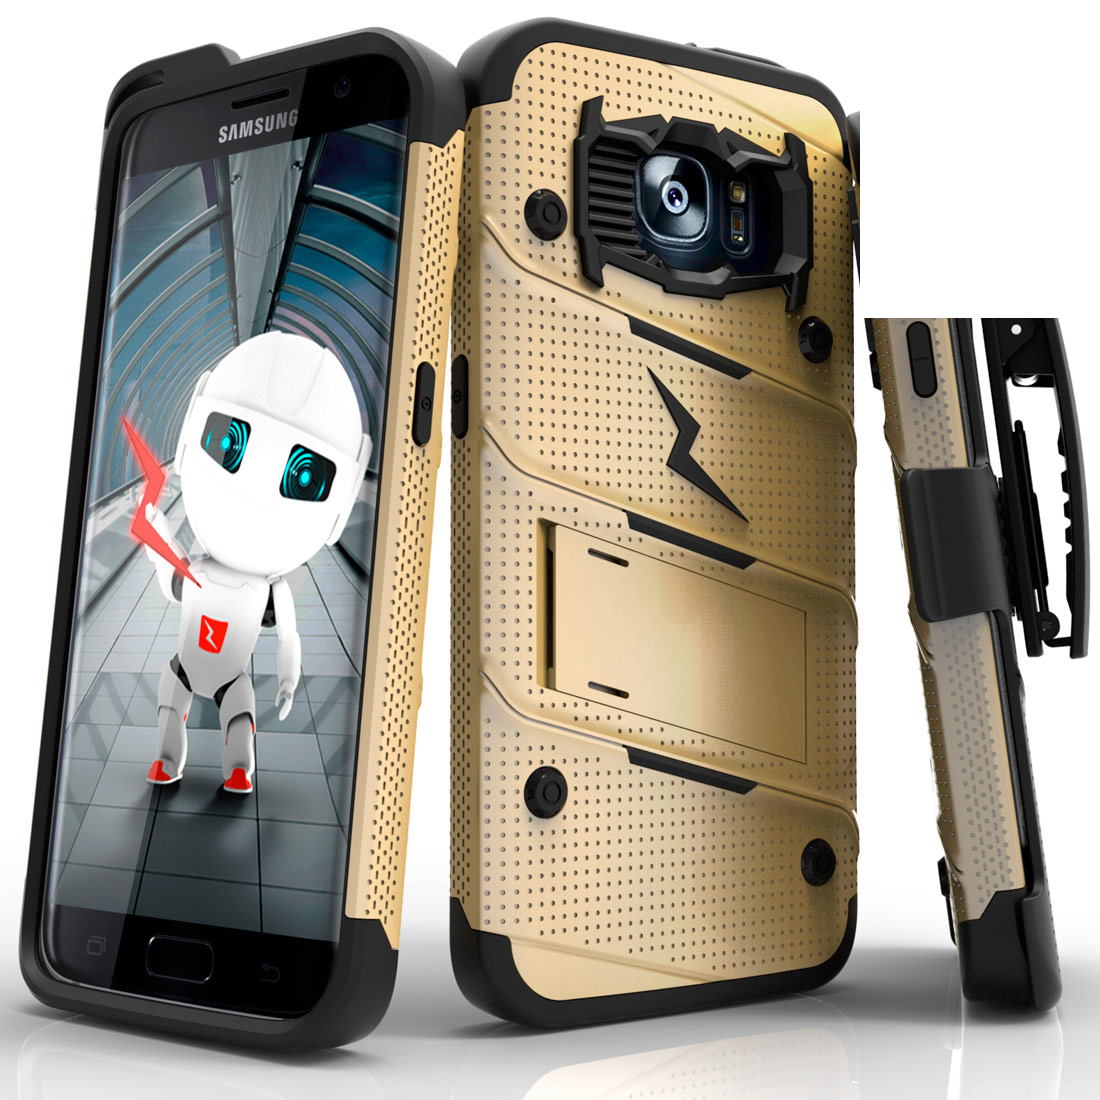 Samsung Galaxy S7 Edge Case - [bolt] Heavy Duty Cover w/ Kickstand, Holster, & Lanyard [Gold/ Black] - Tempered Screen Protector Included